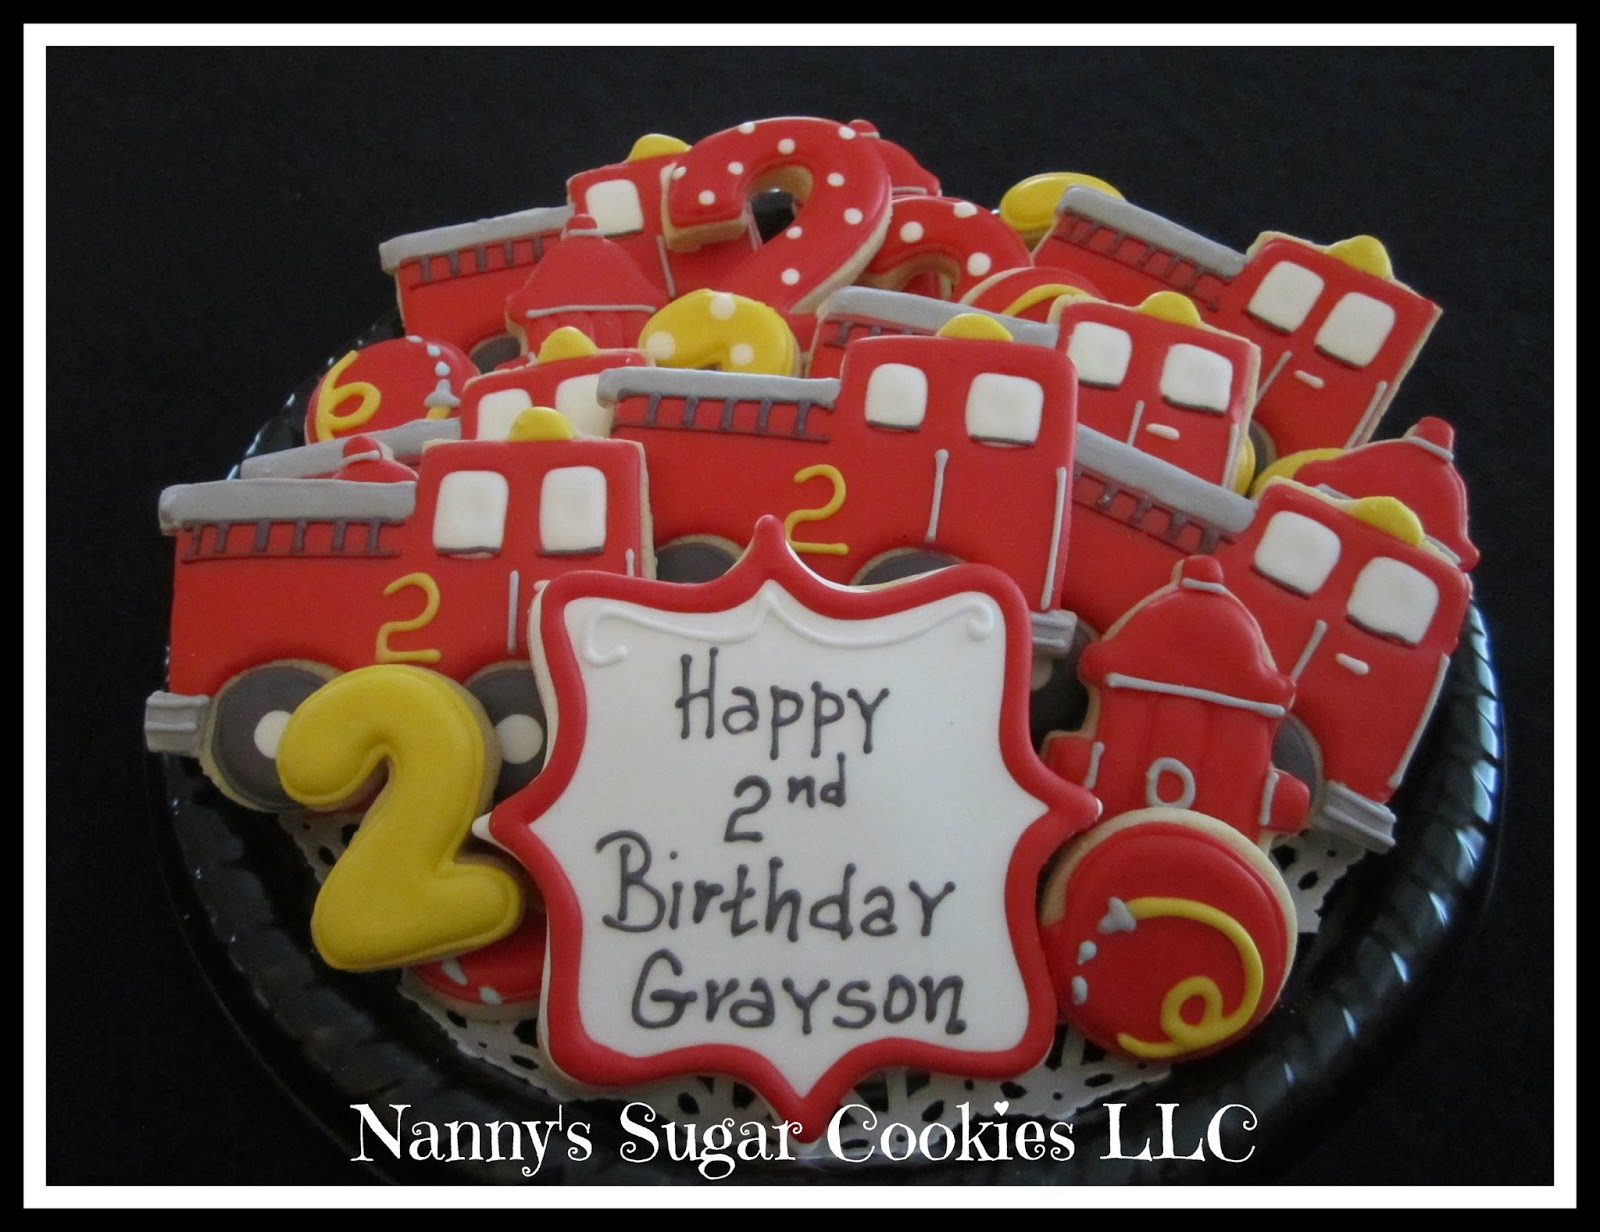 Nannys Sugar Cookies LLC Fire Truck Birthday Party